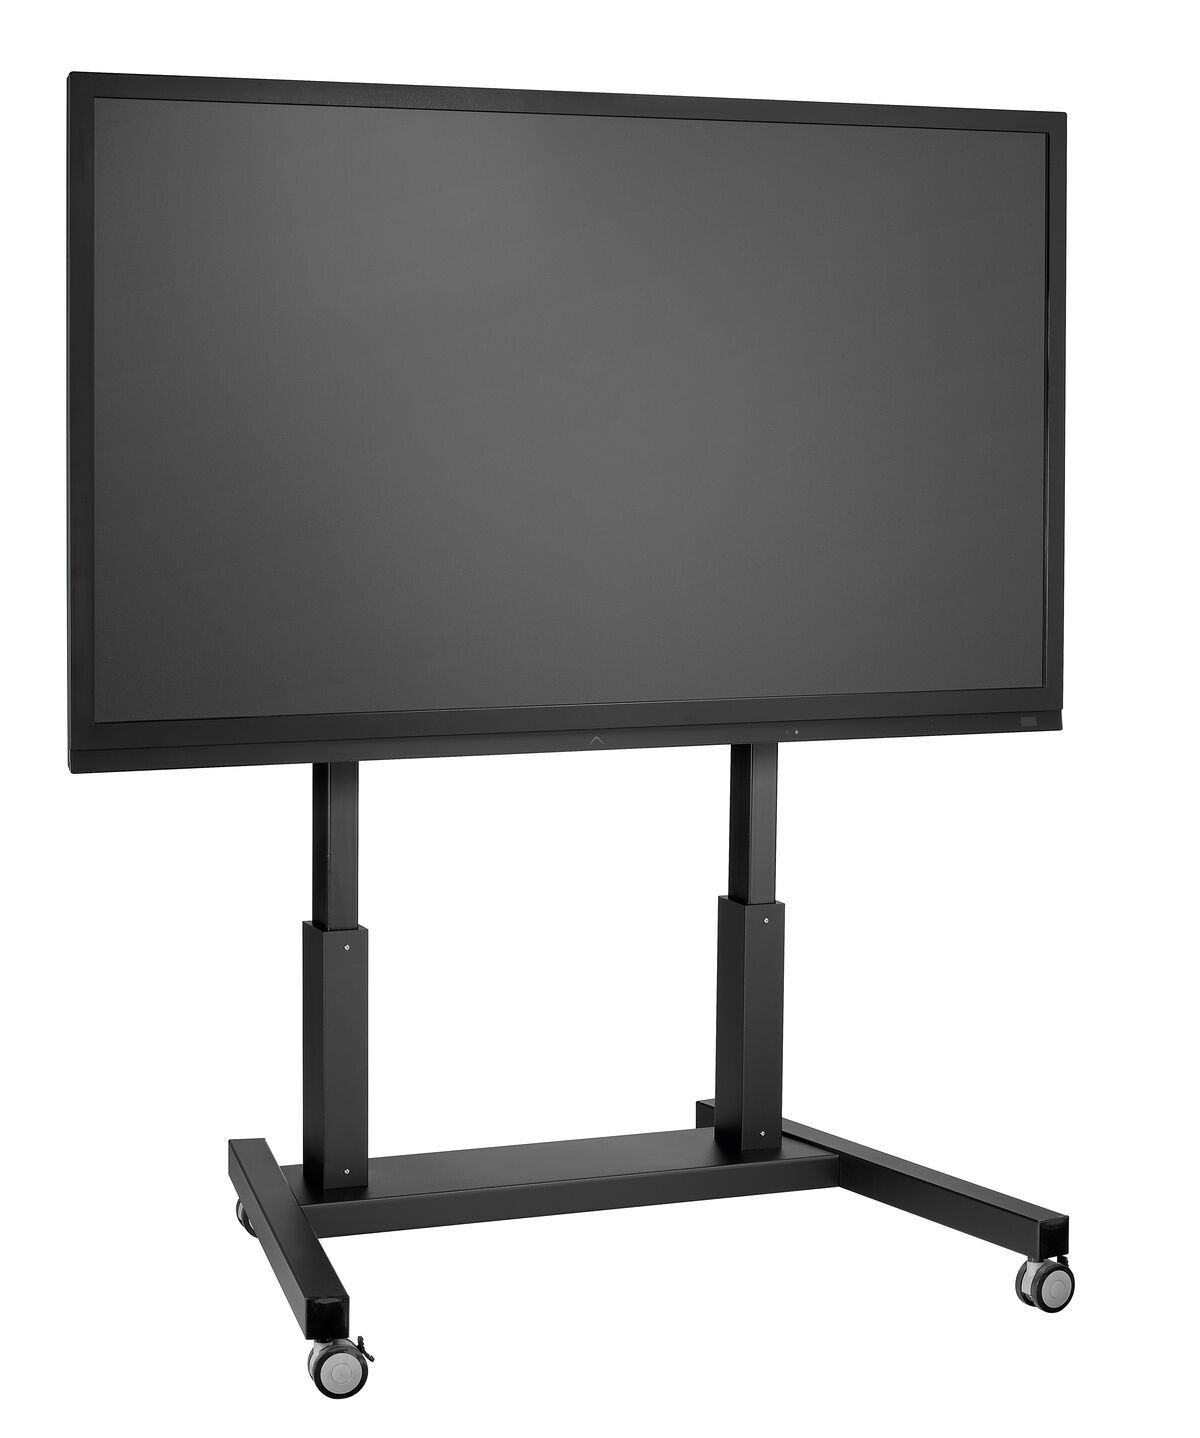 Vogel's PFTE 7112 Display trolley motorized - Application